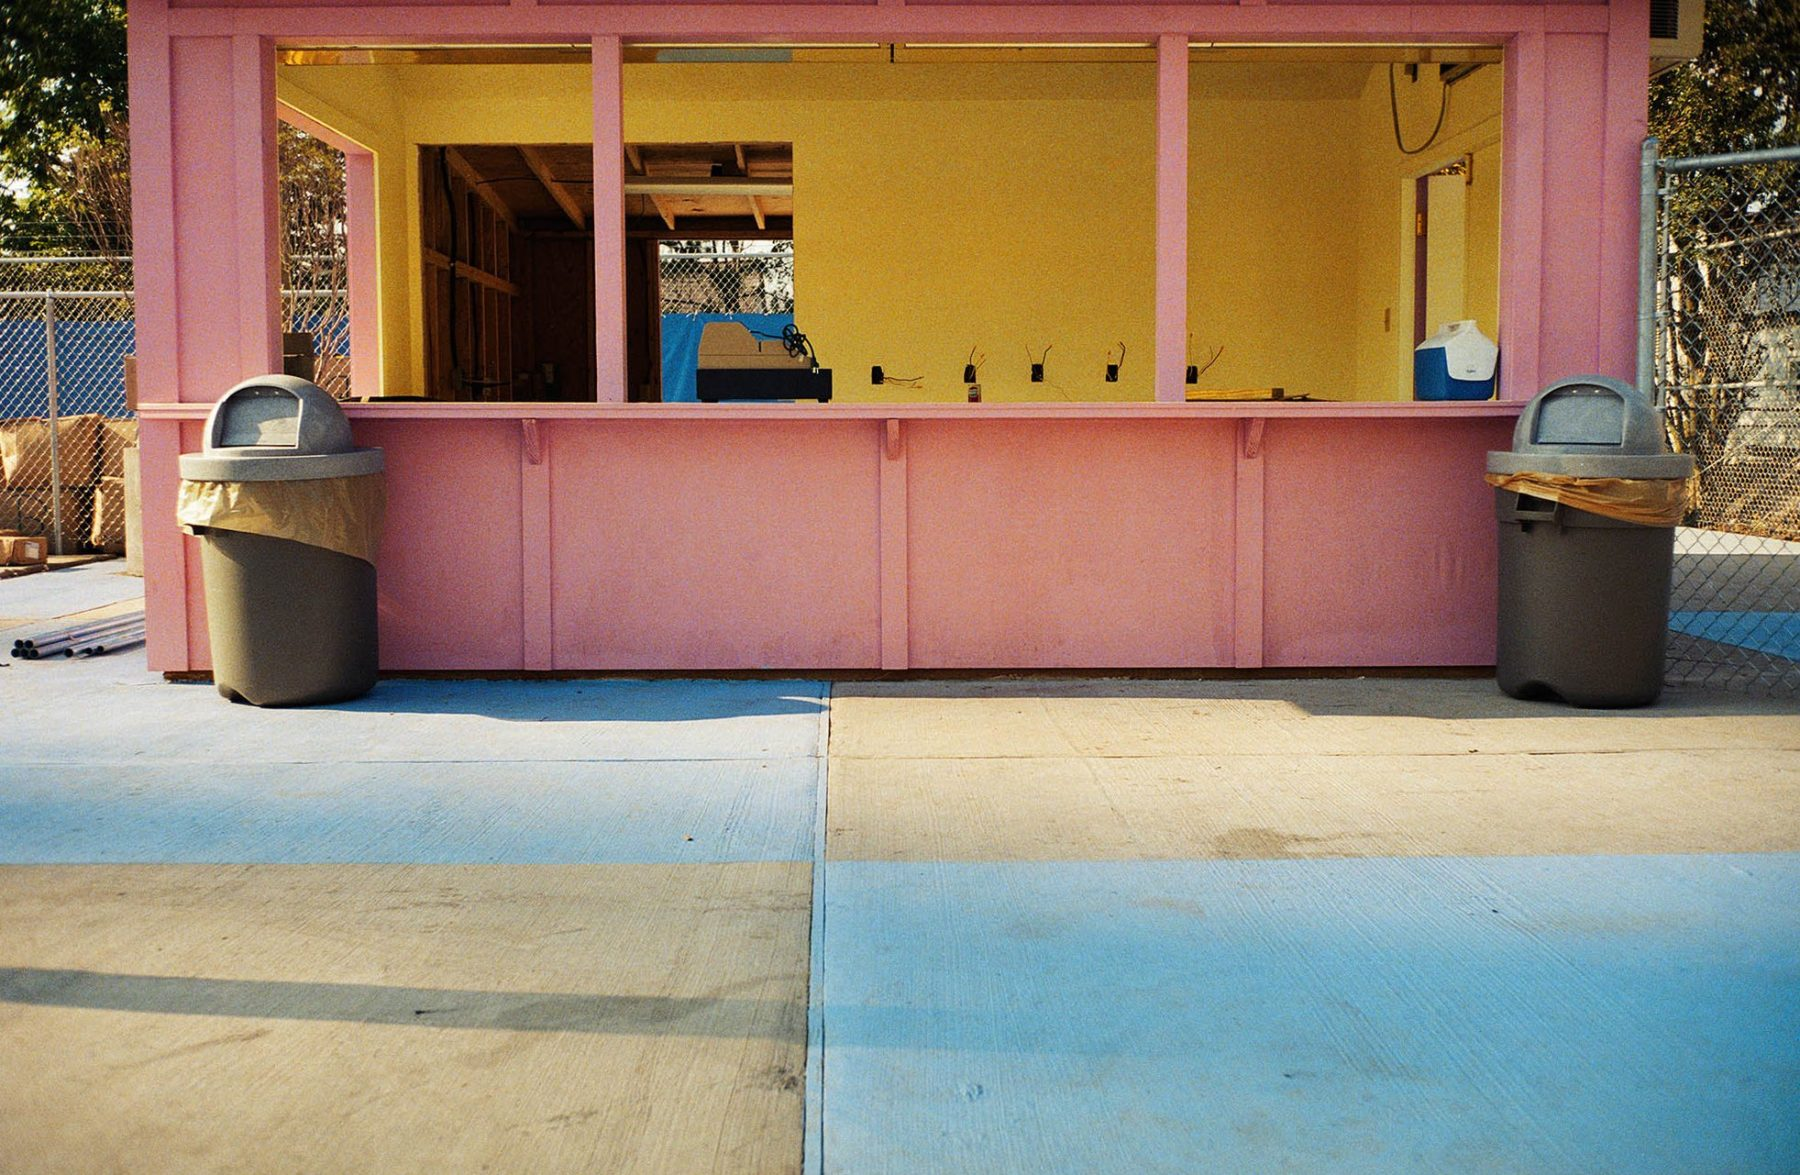 Color photography, Untitled, c. 1983-86 photograph by William Eggleston © Eggleston Artistic Trust